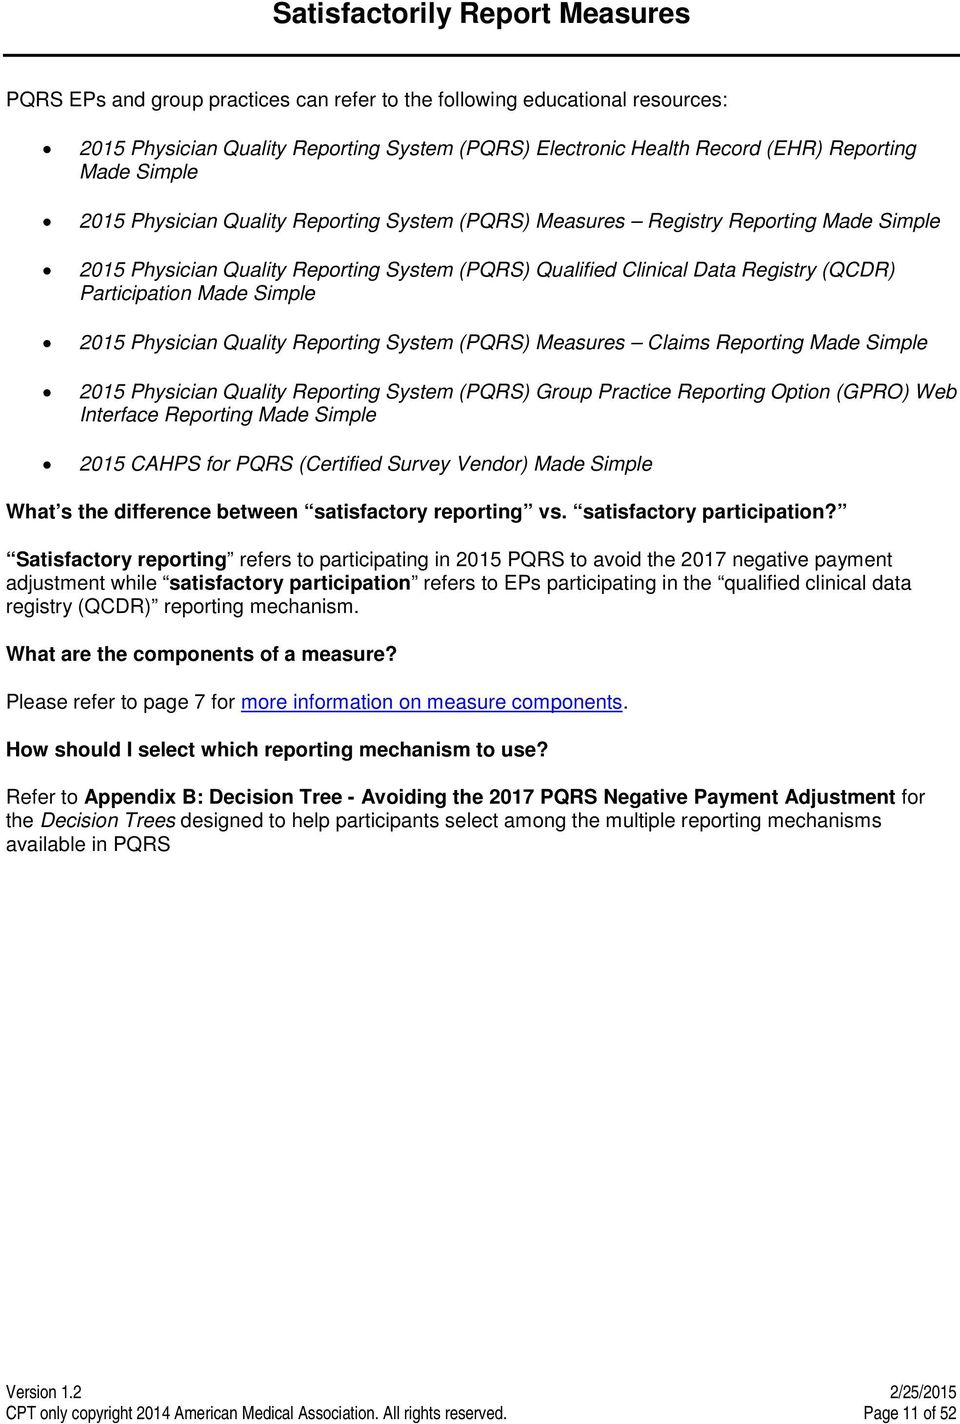 Made Simple 2015 Physician Quality Reporting System (PQRS) Measures Claims Reporting Made Simple 2015 Physician Quality Reporting System (PQRS) Group Practice Reporting Option (GPRO) Web Interface